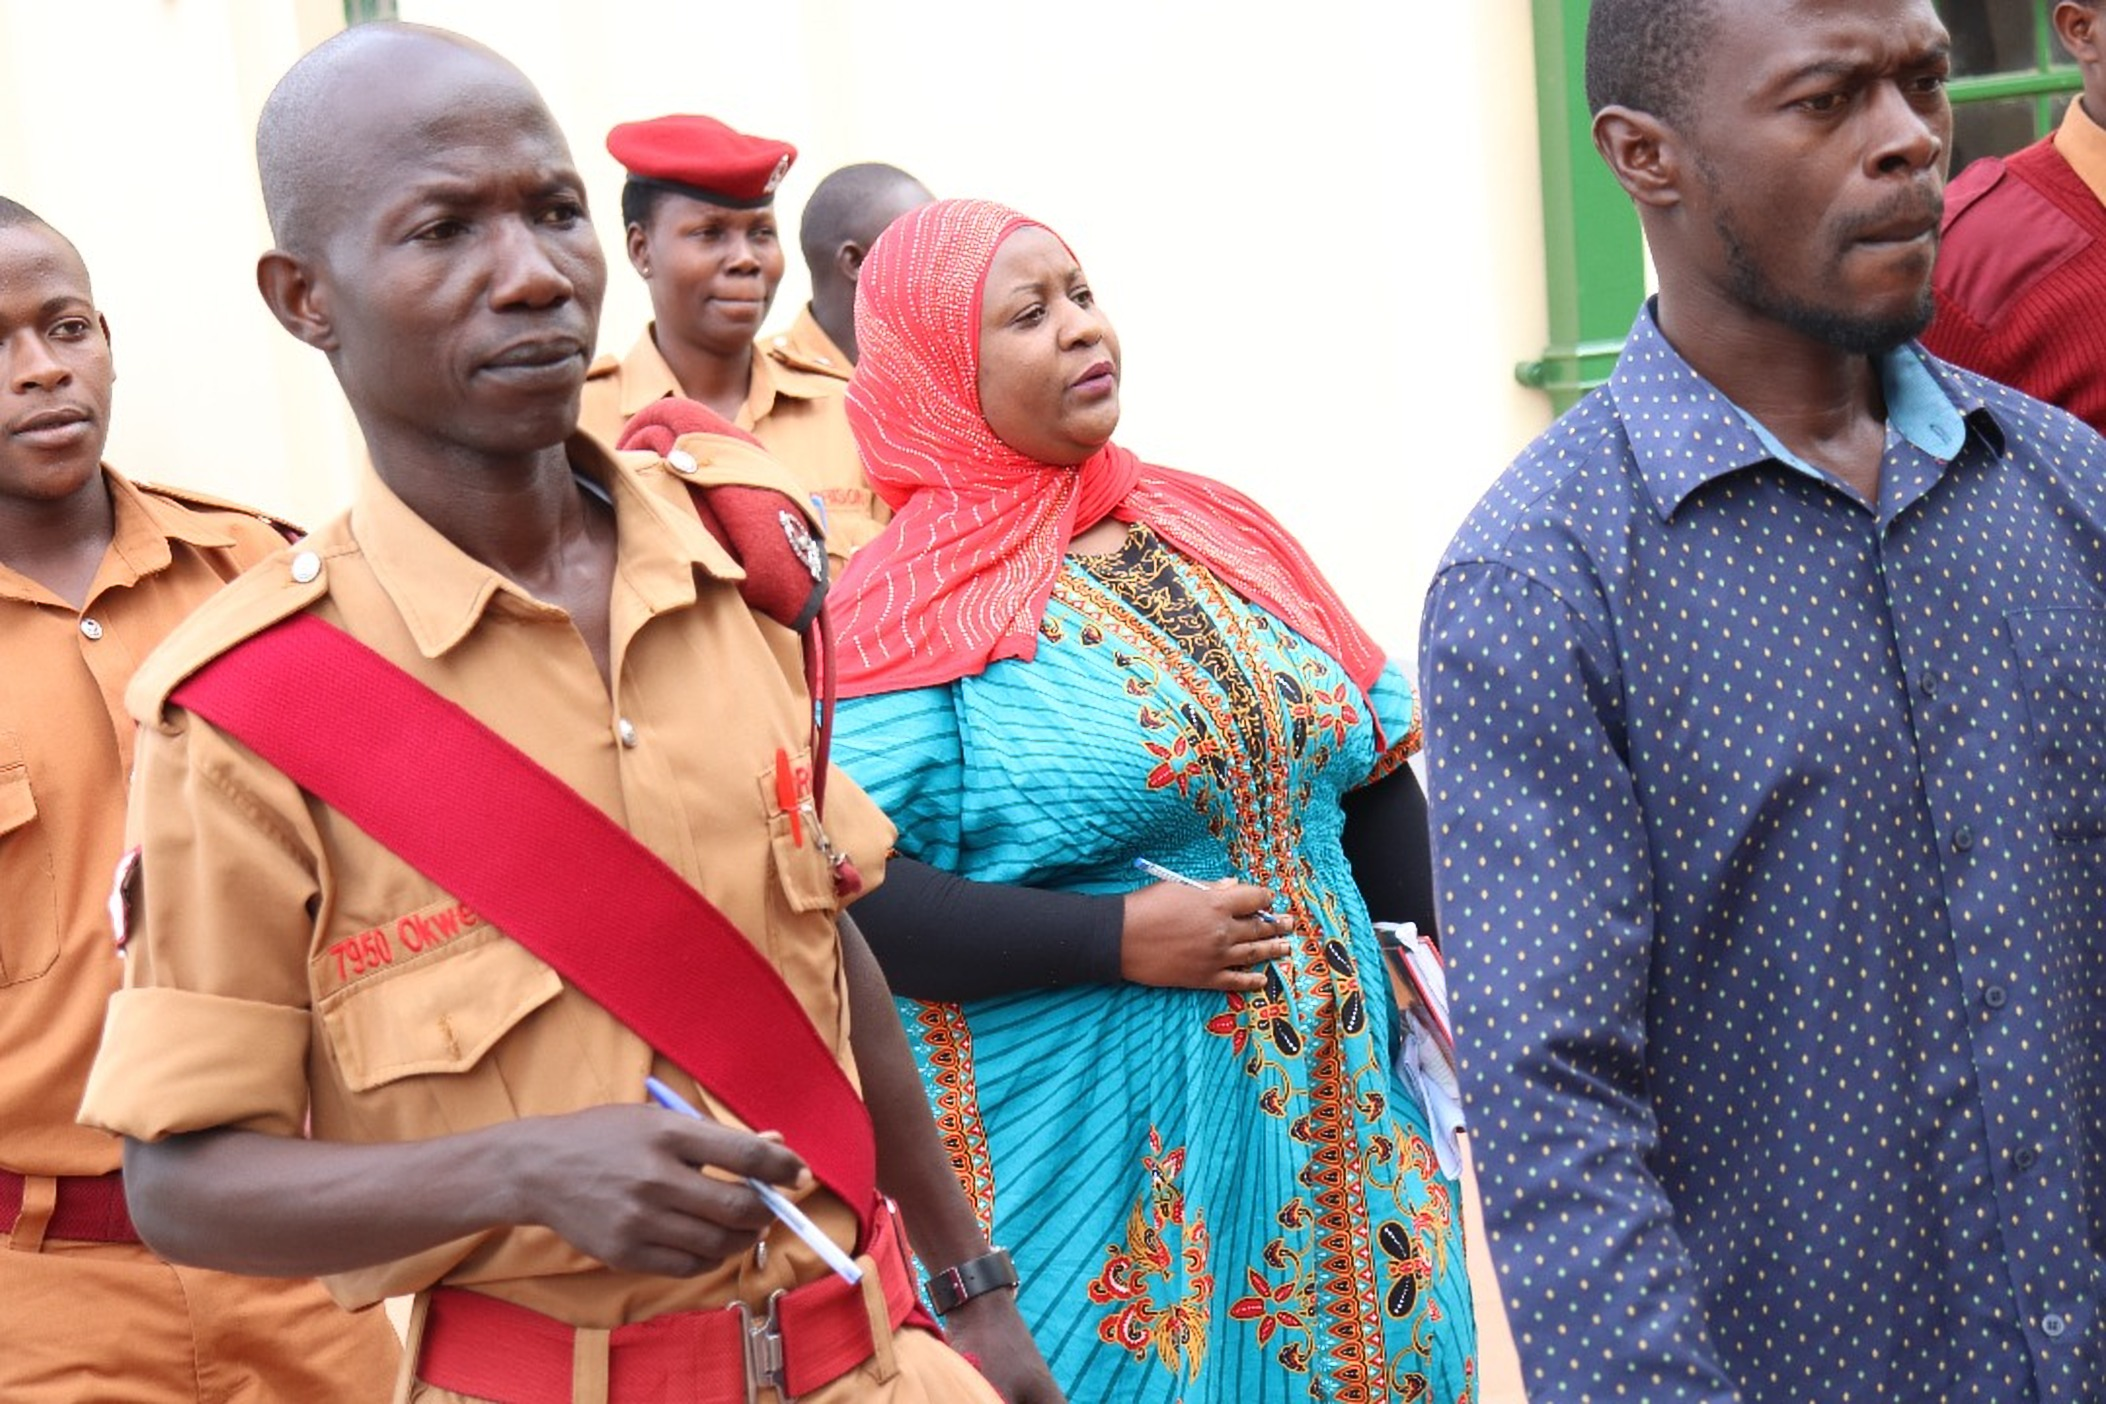 Aisha Nakasibante, a sister in-law to cardiologist Dr. Aggrey Kiyingi escorted by Prisons Officers (COURTESY PHOTO)